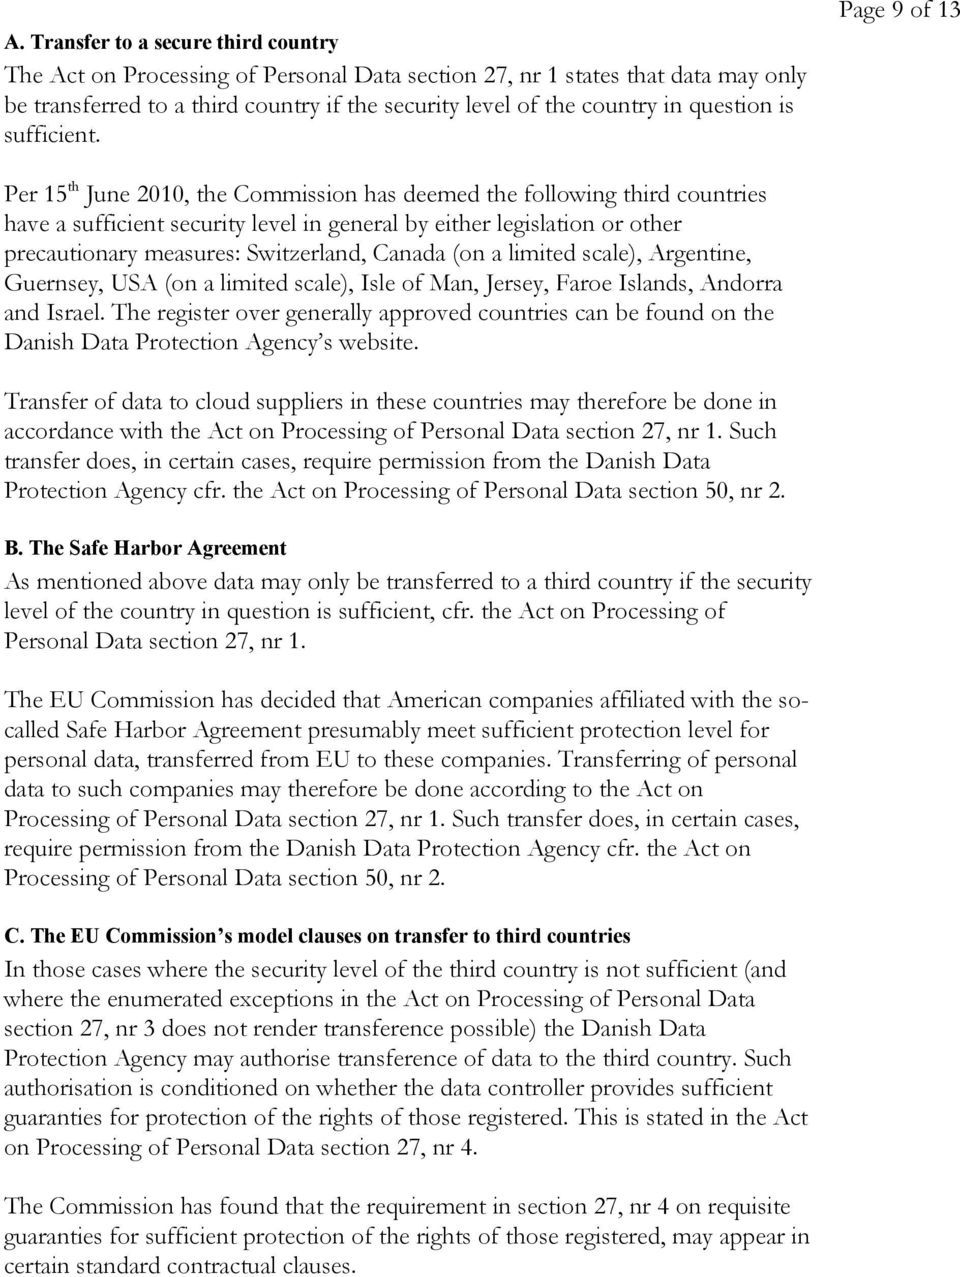 Page 9 of 13 Per 15 th June 2010, the Commission has deemed the following third countries have a sufficient security level in general by either legislation or other precautionary measures: